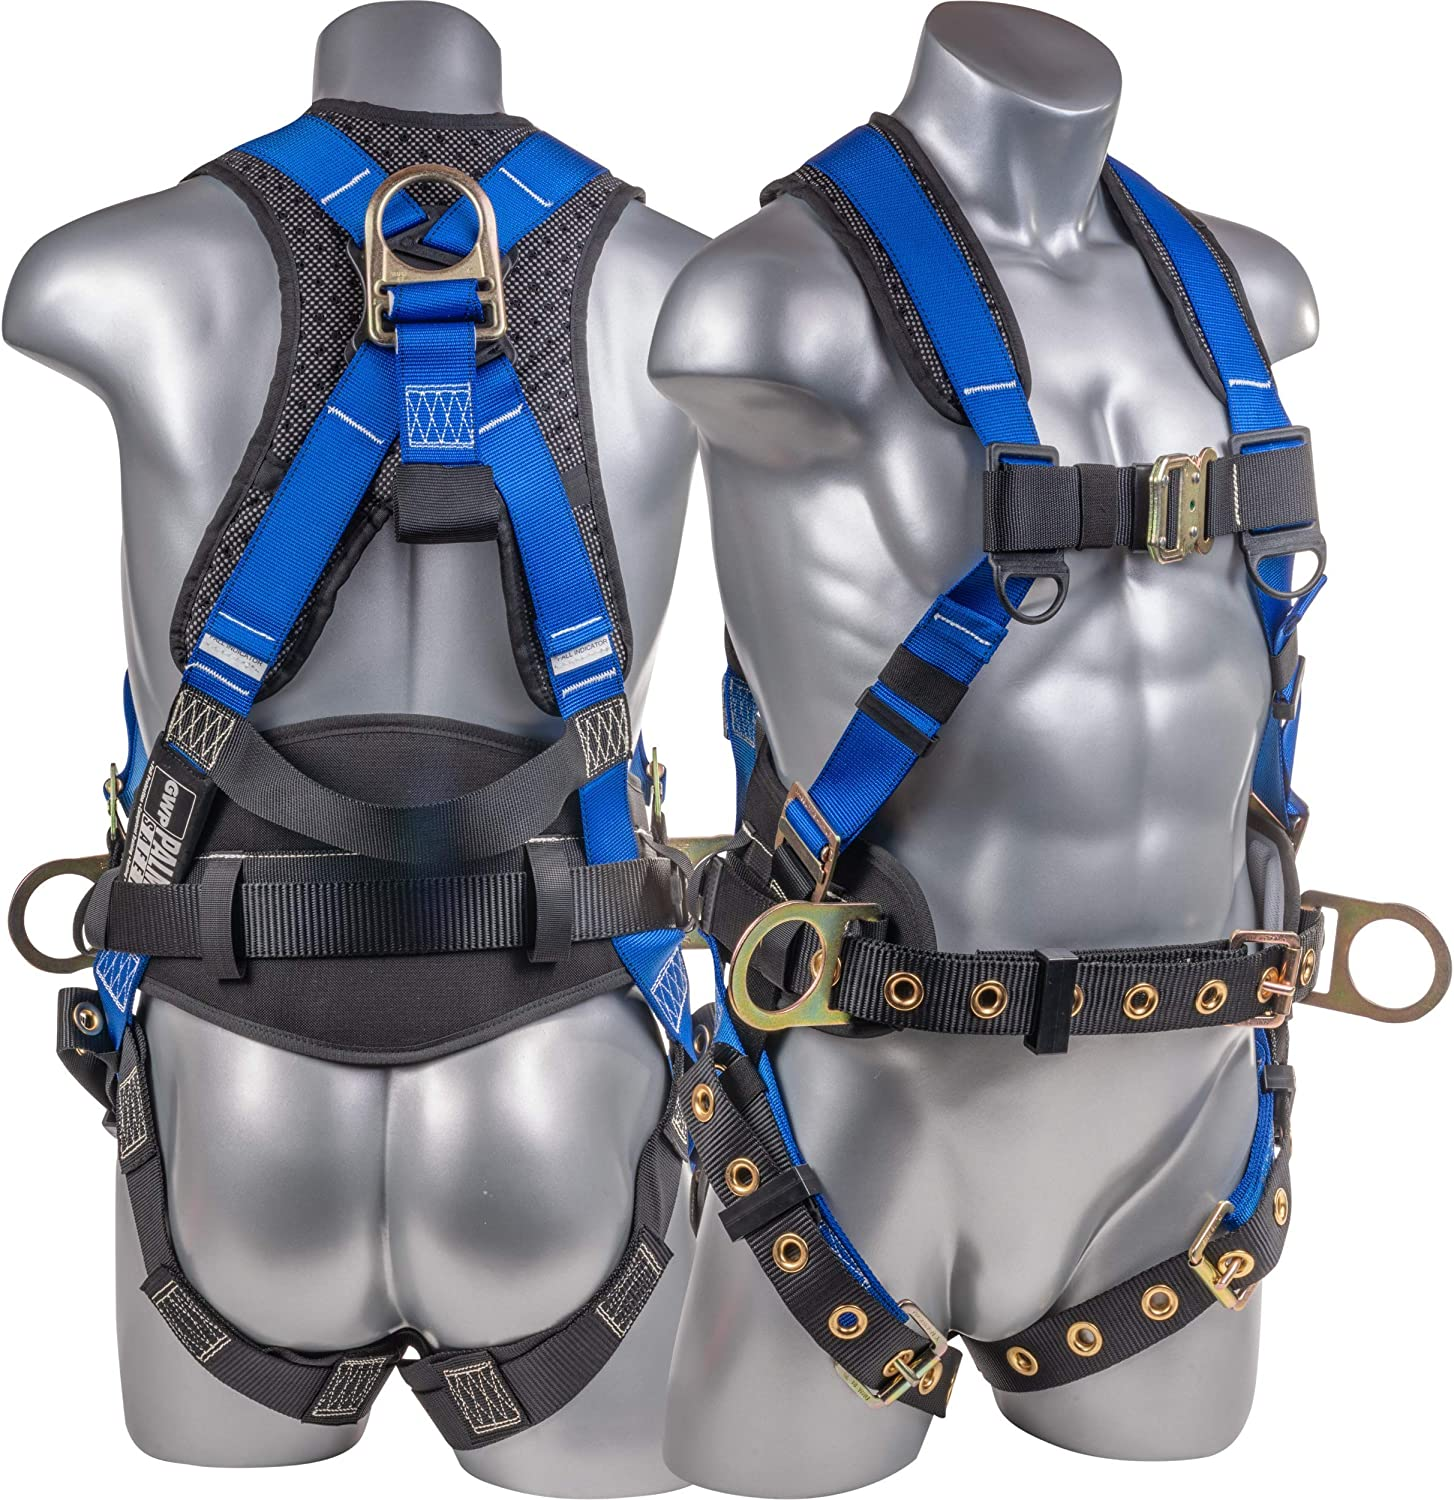 Palmer Safety Fall Protection Harness